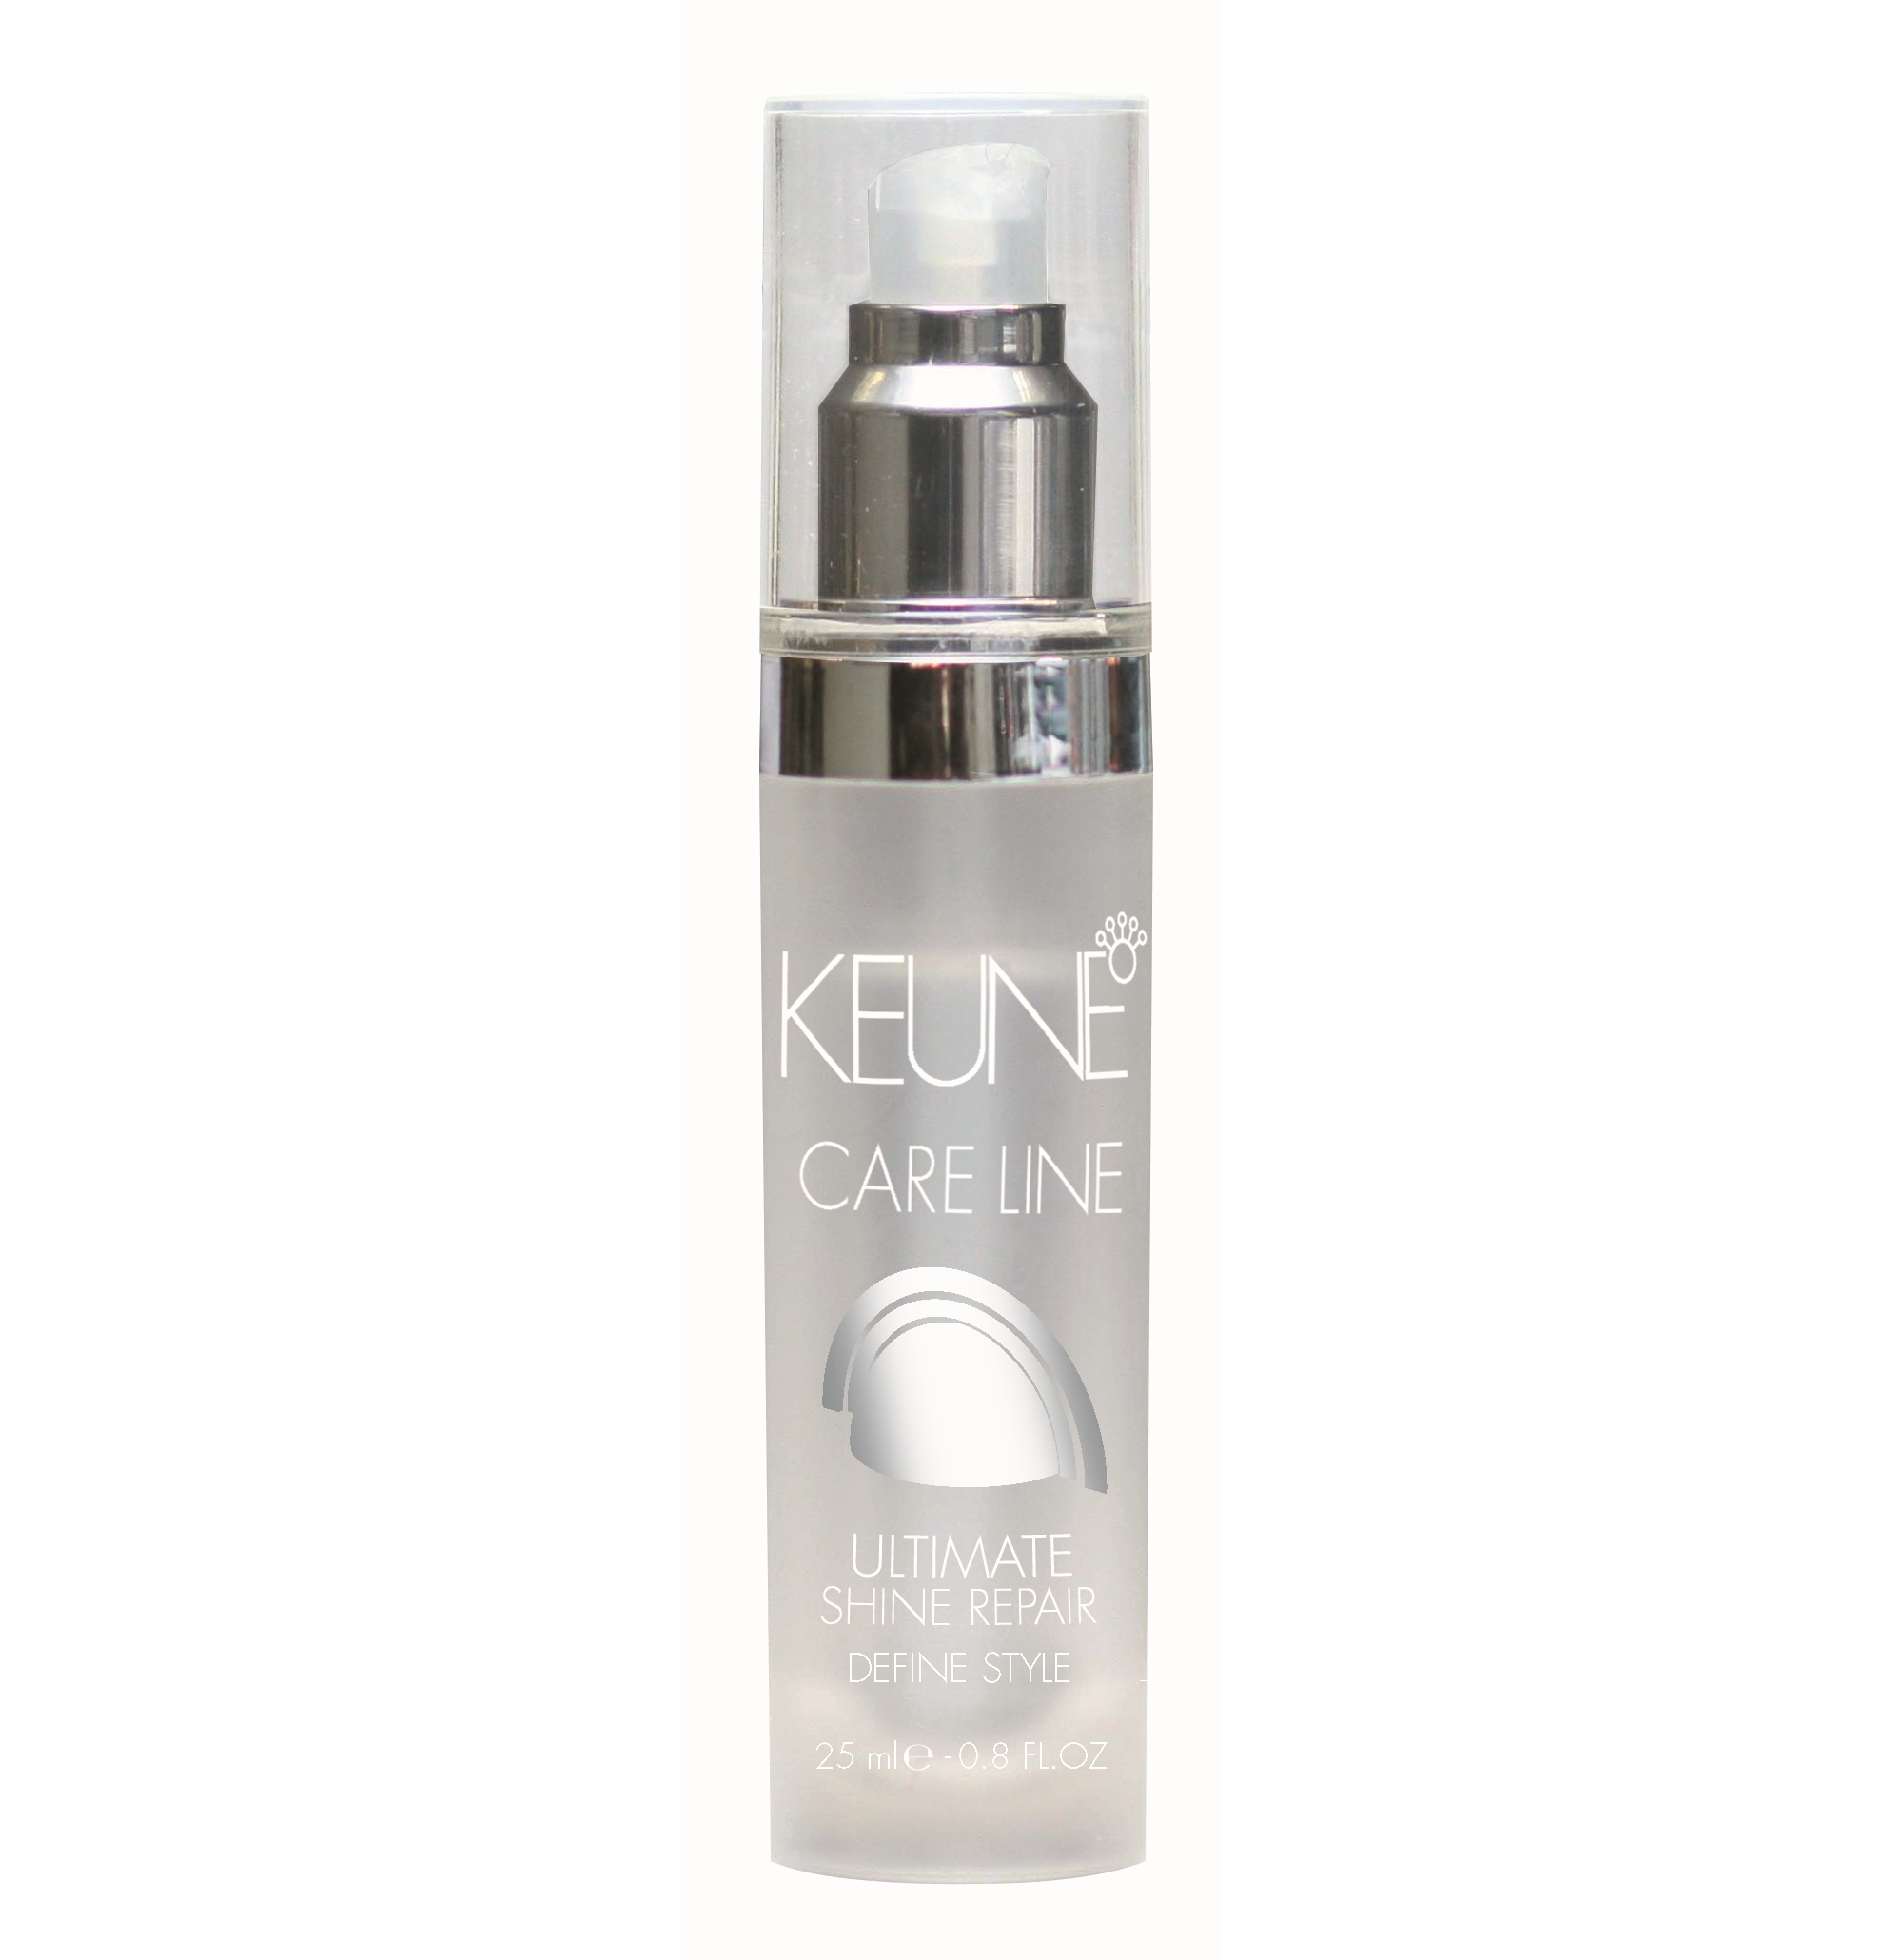 KEUNE Блеск-восстановитель & Кэе Лайн&  / CARE LINE ULTIMATE SHINE REPAIR 25мл -  Блески